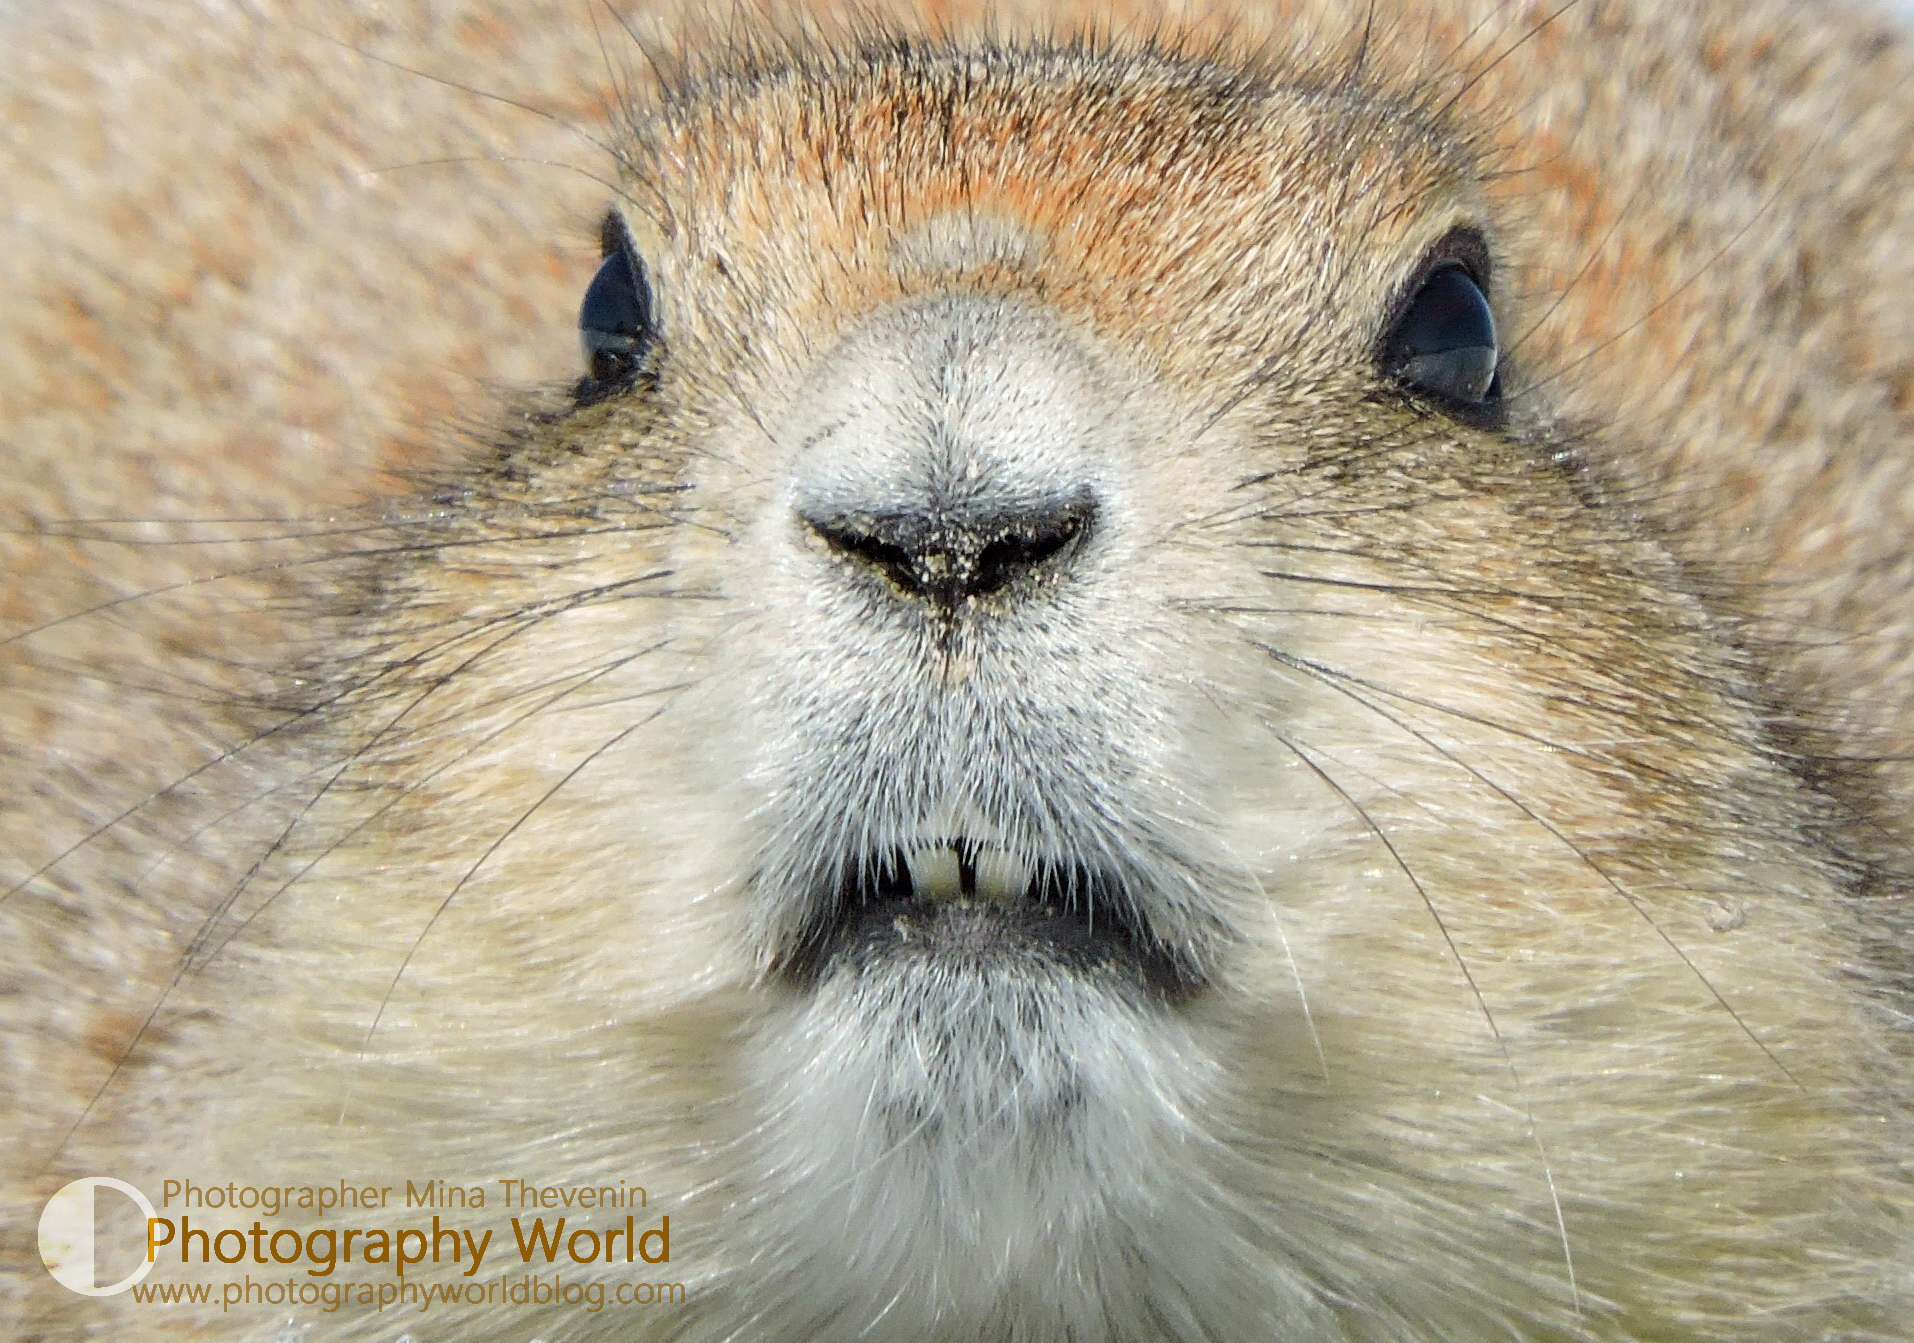 Prairie Dog Face Detail adult. Detail. PHOTOGRAPHY WORLD.ORG @ https://photographyworld.org/animals/black-tailed-prairie-dog-who-let-the-dogs-out/